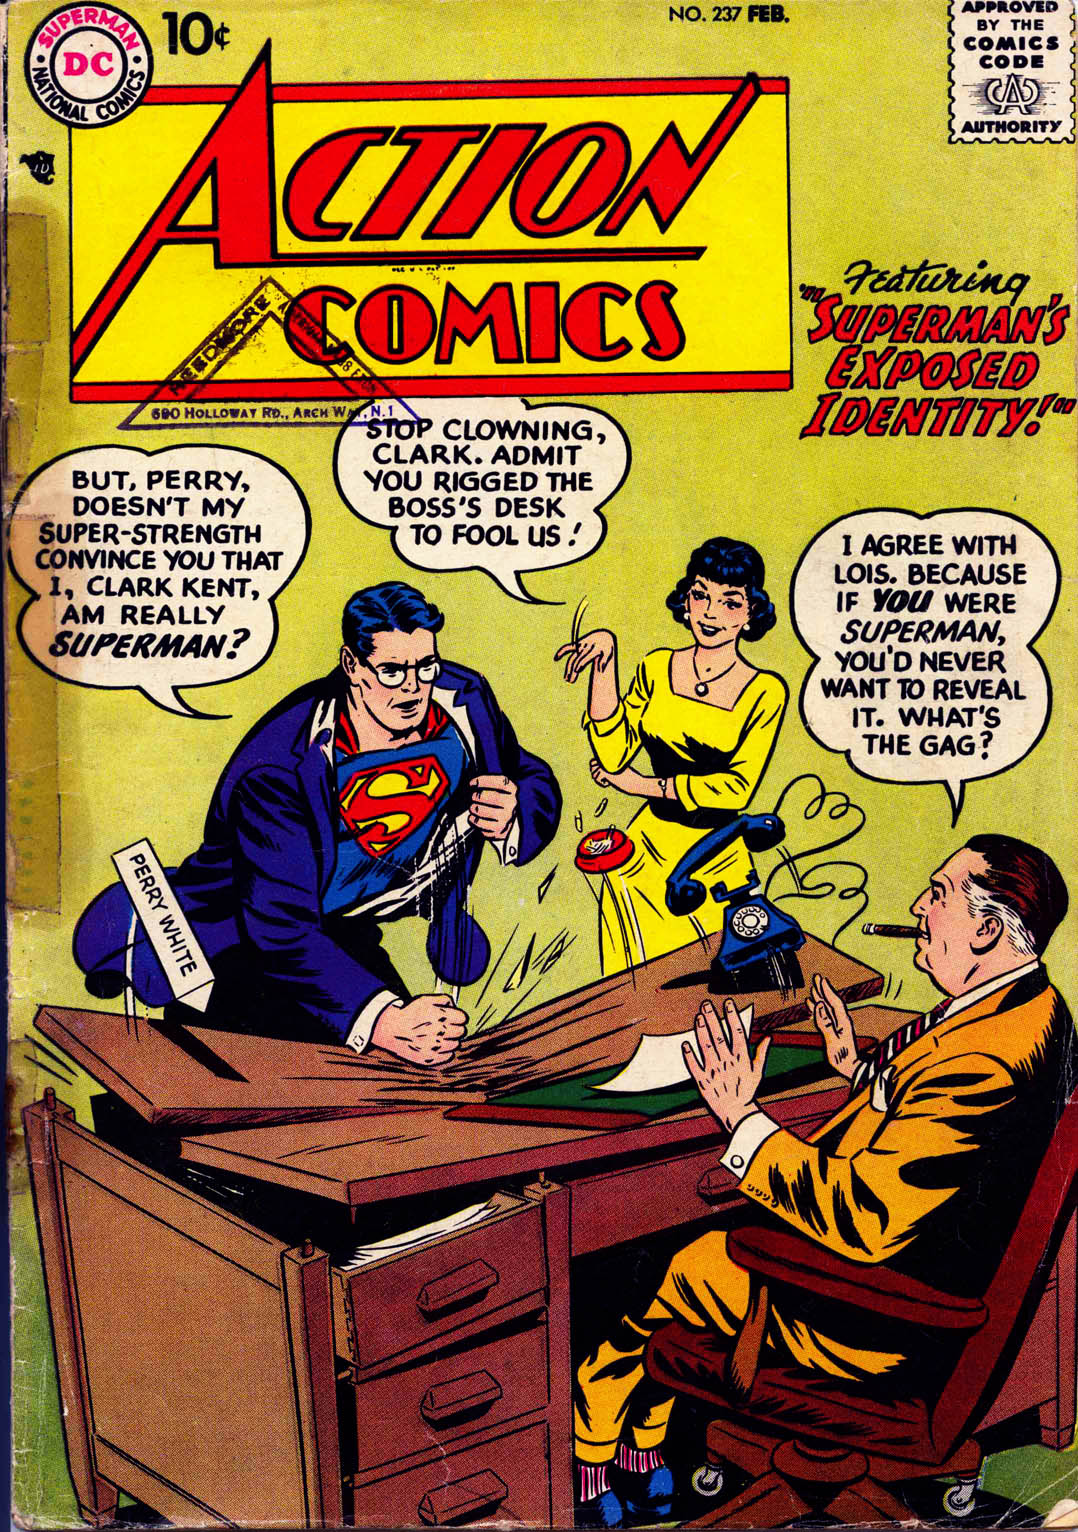 Read online Action Comics (1938) comic -  Issue #237 - 1